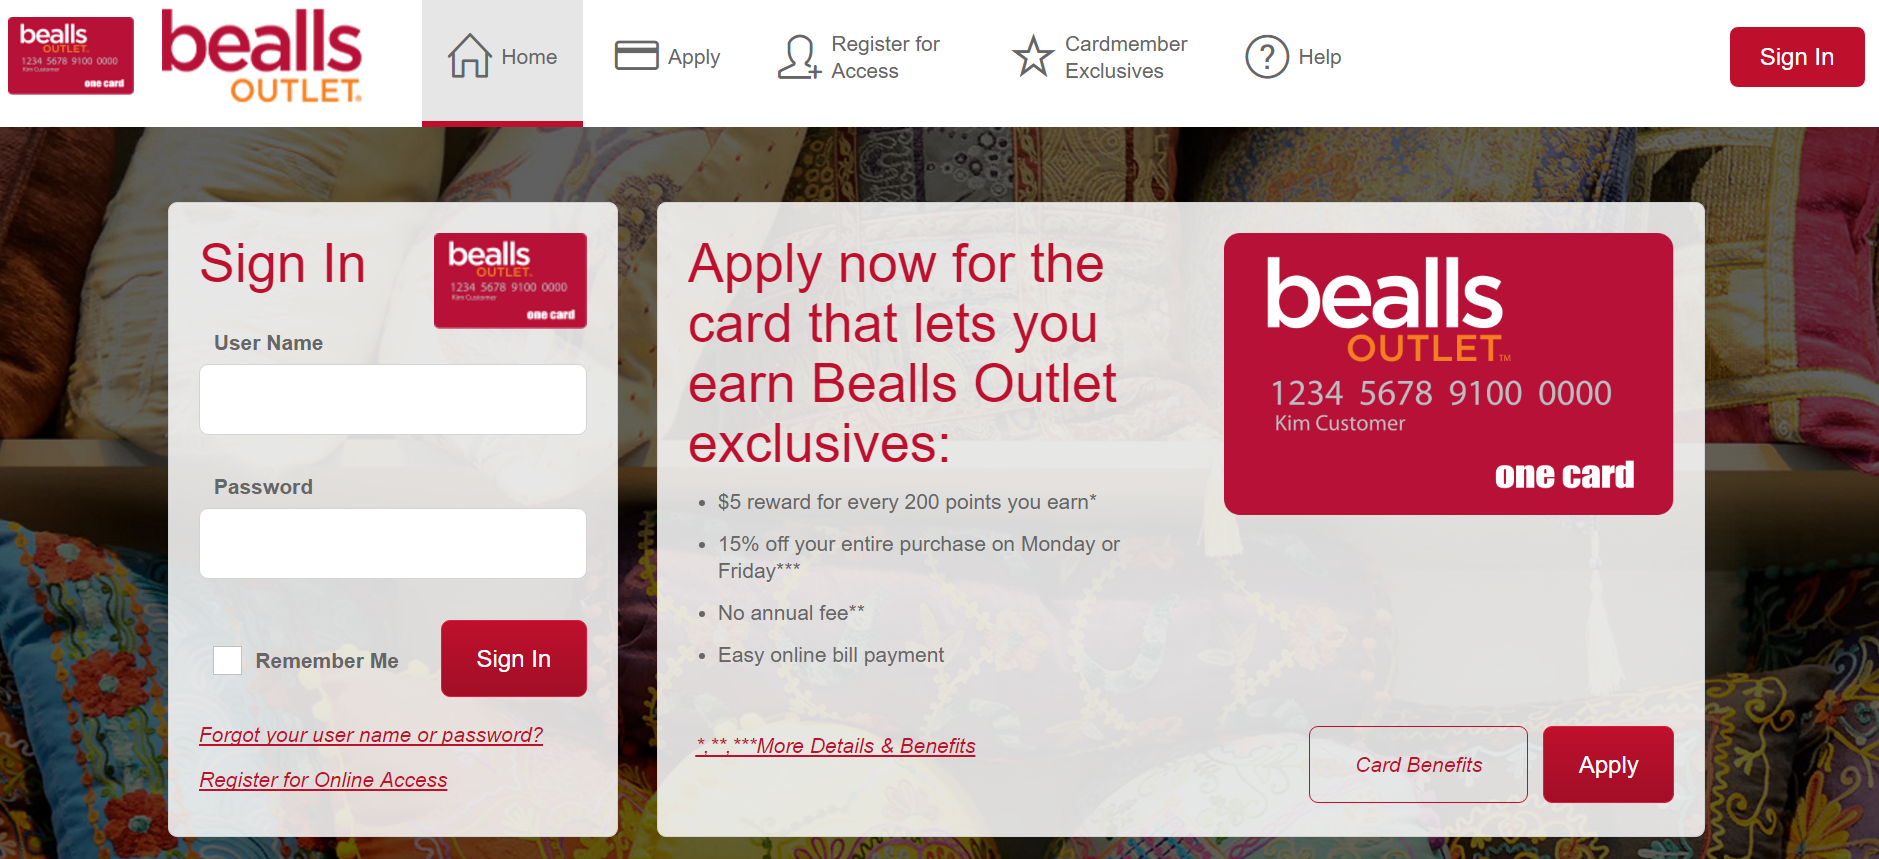 How to Login to the Bealls Outlet Credit Card